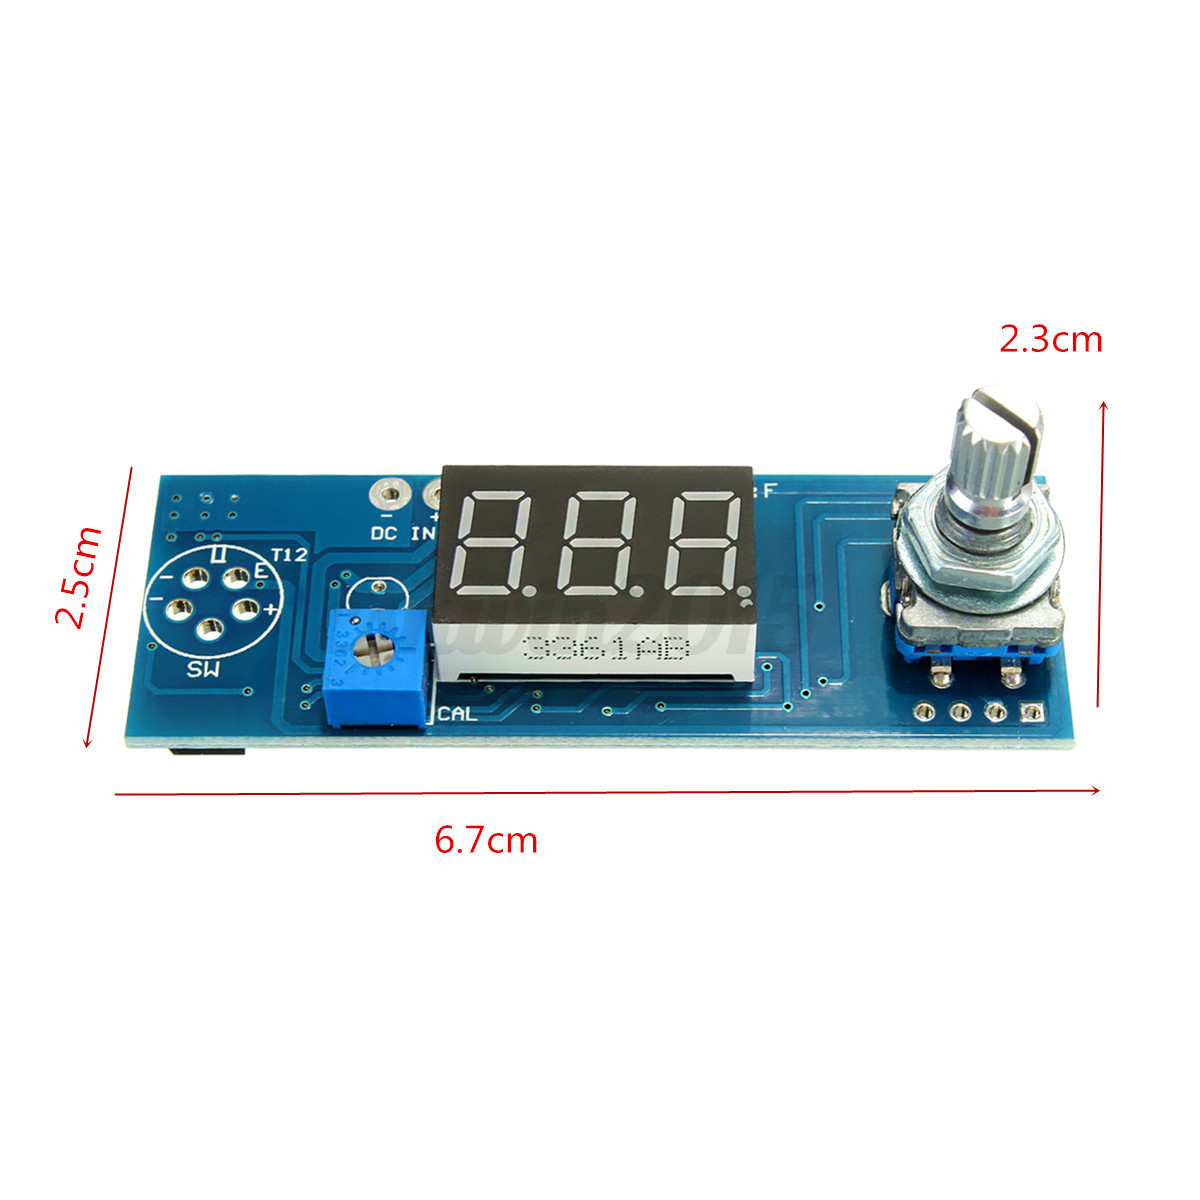 Soldering Station Display Temperature Control Board Air Outlet Knob #0C476D